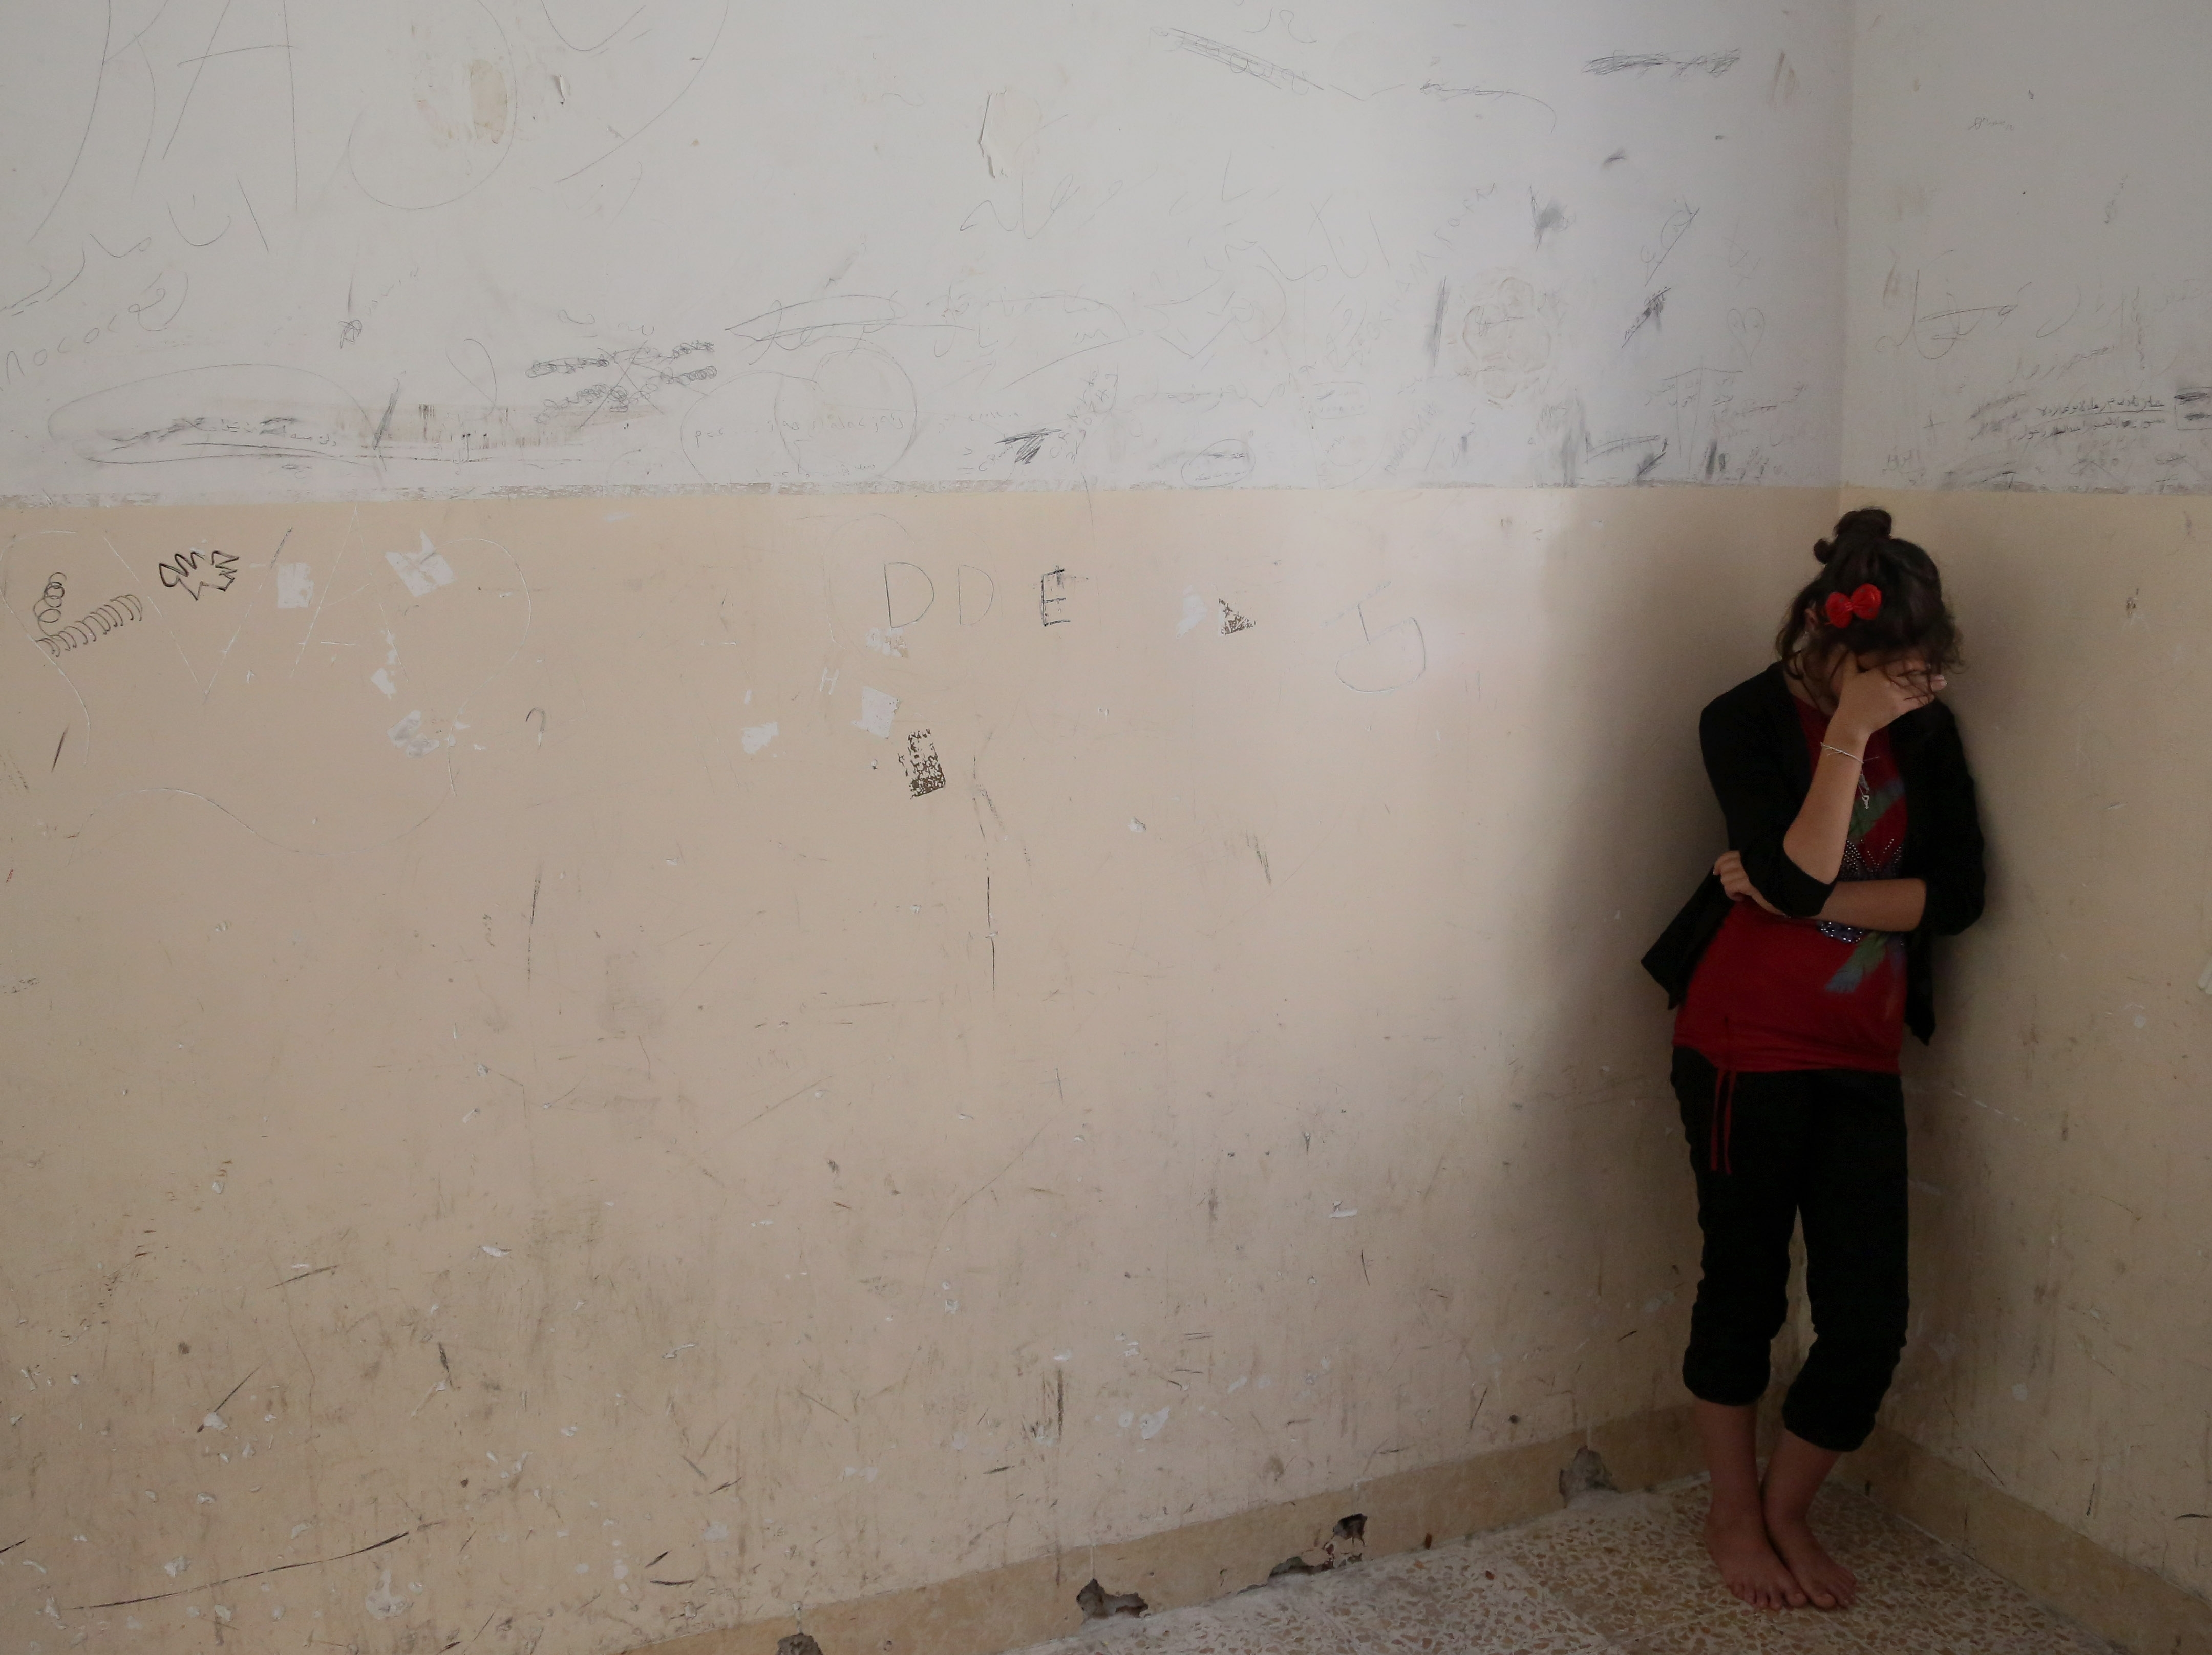 A Yazidi woman cries after Islamic State militants reportedly shot dozens of Yazidi men to death.